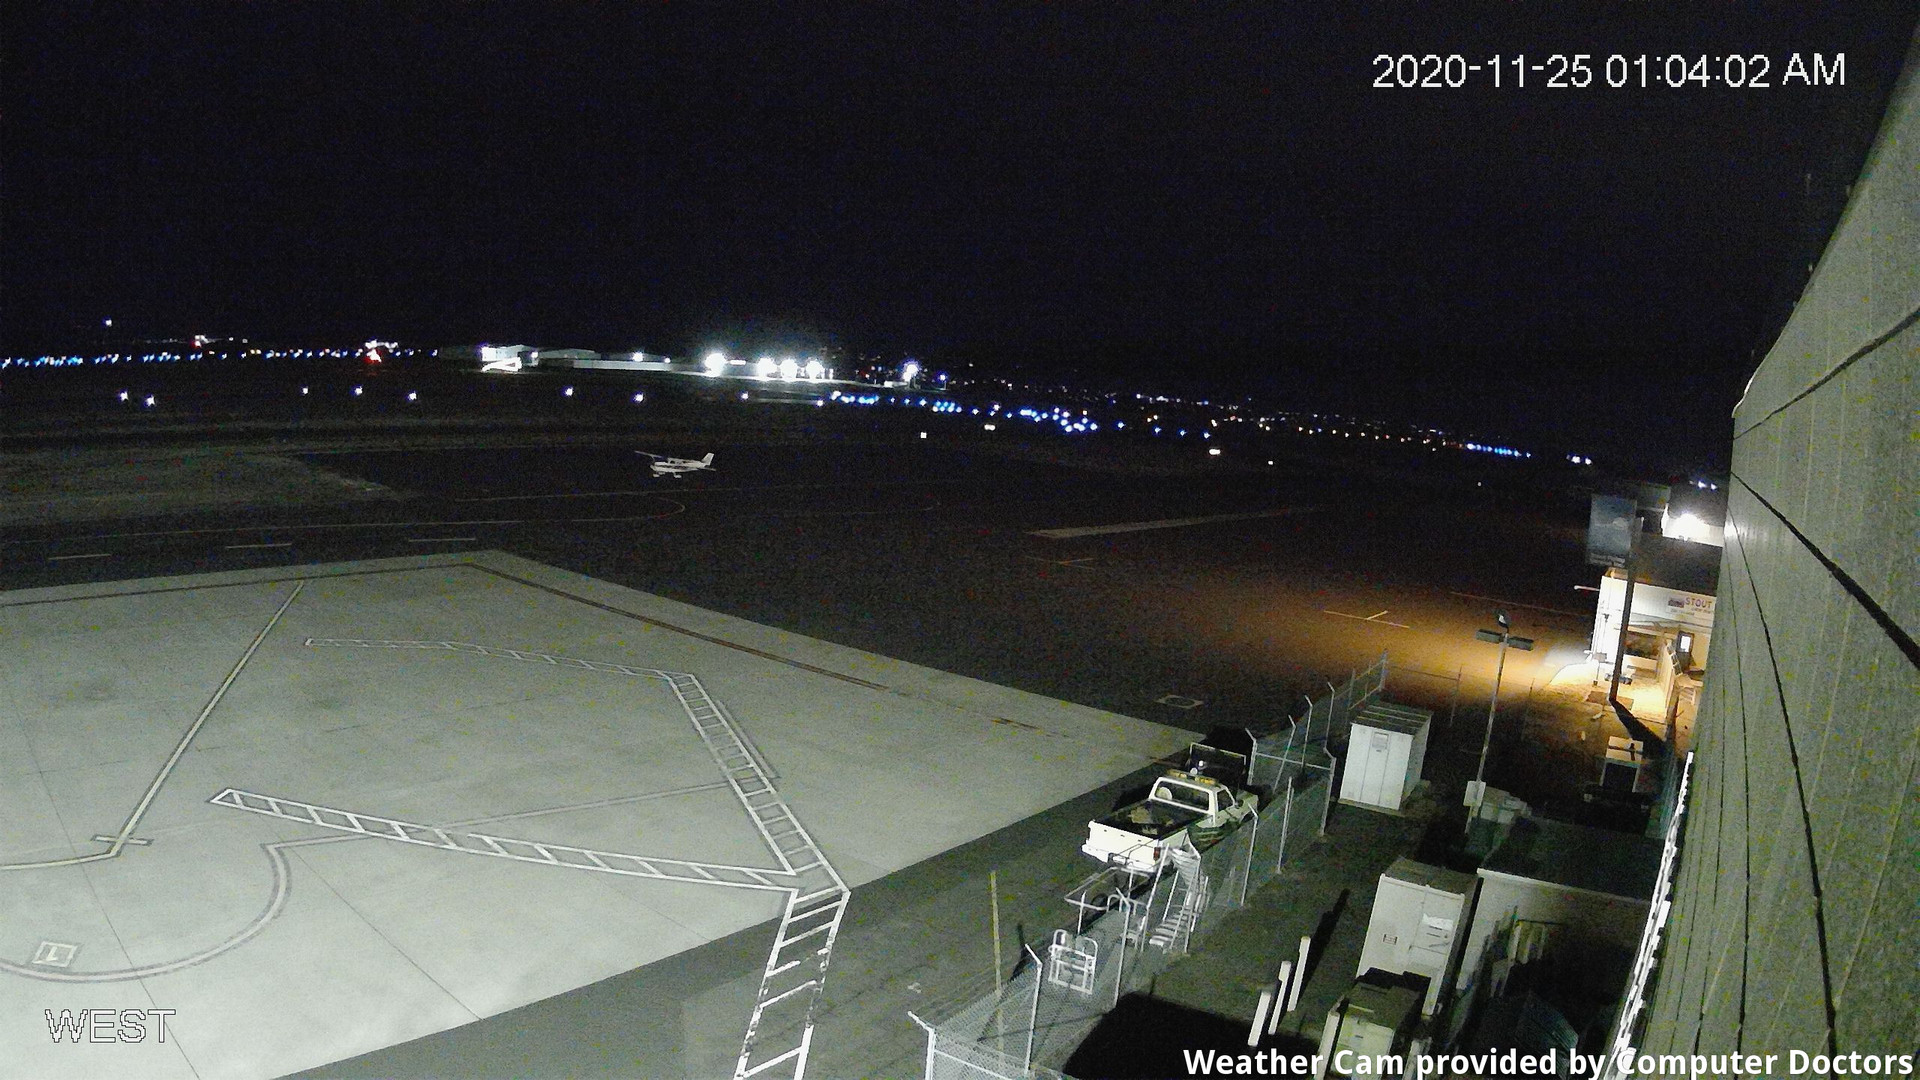 time-lapse frame, West webcam